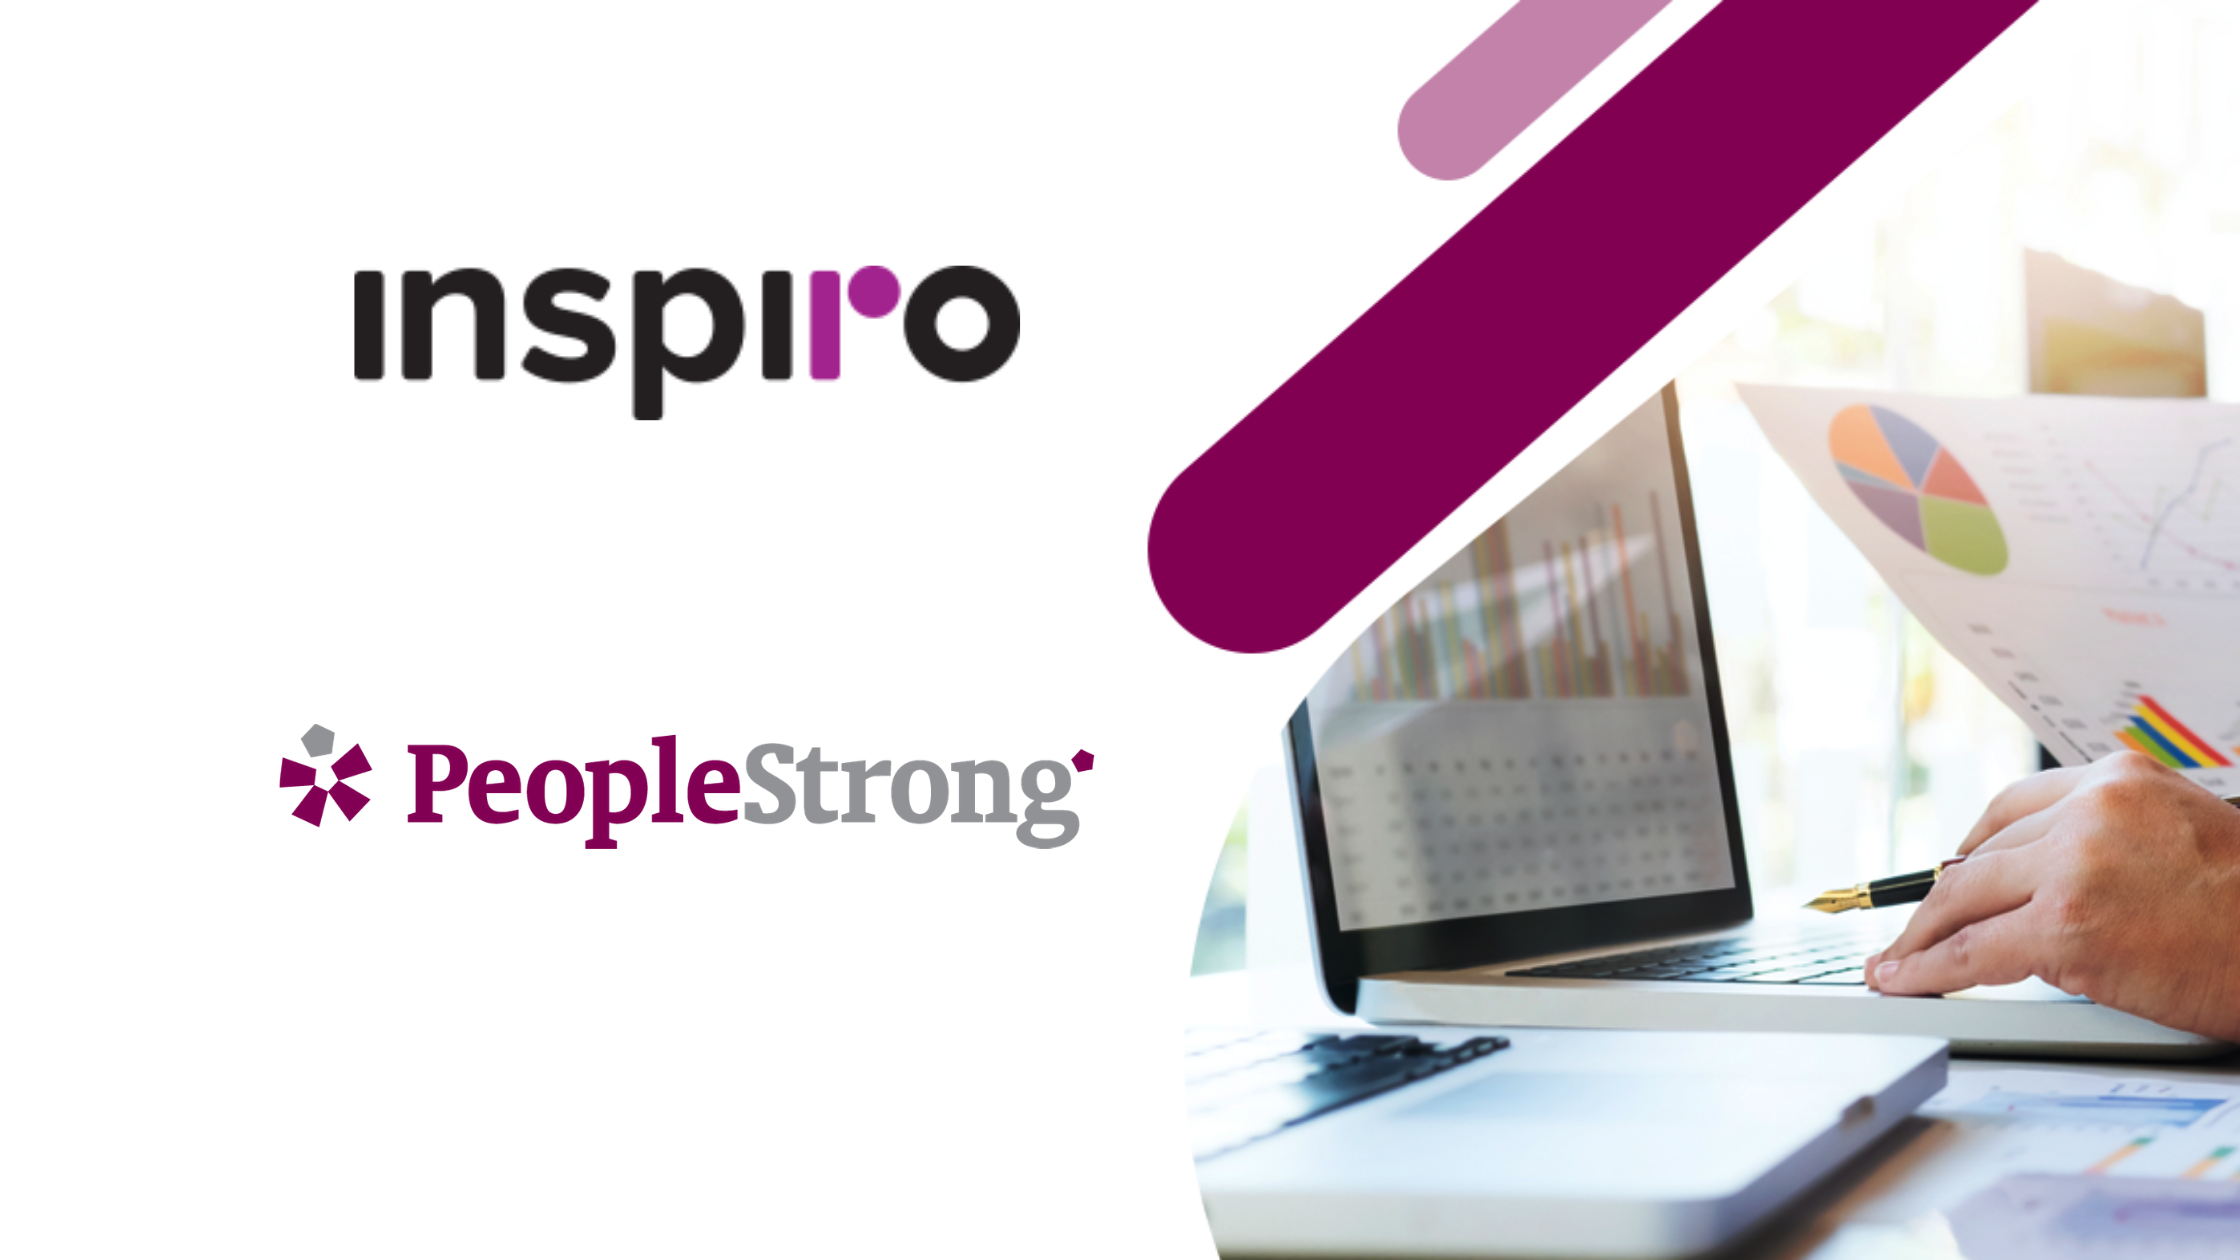 Inspiro partners with PeopleStrong Alt in creating...